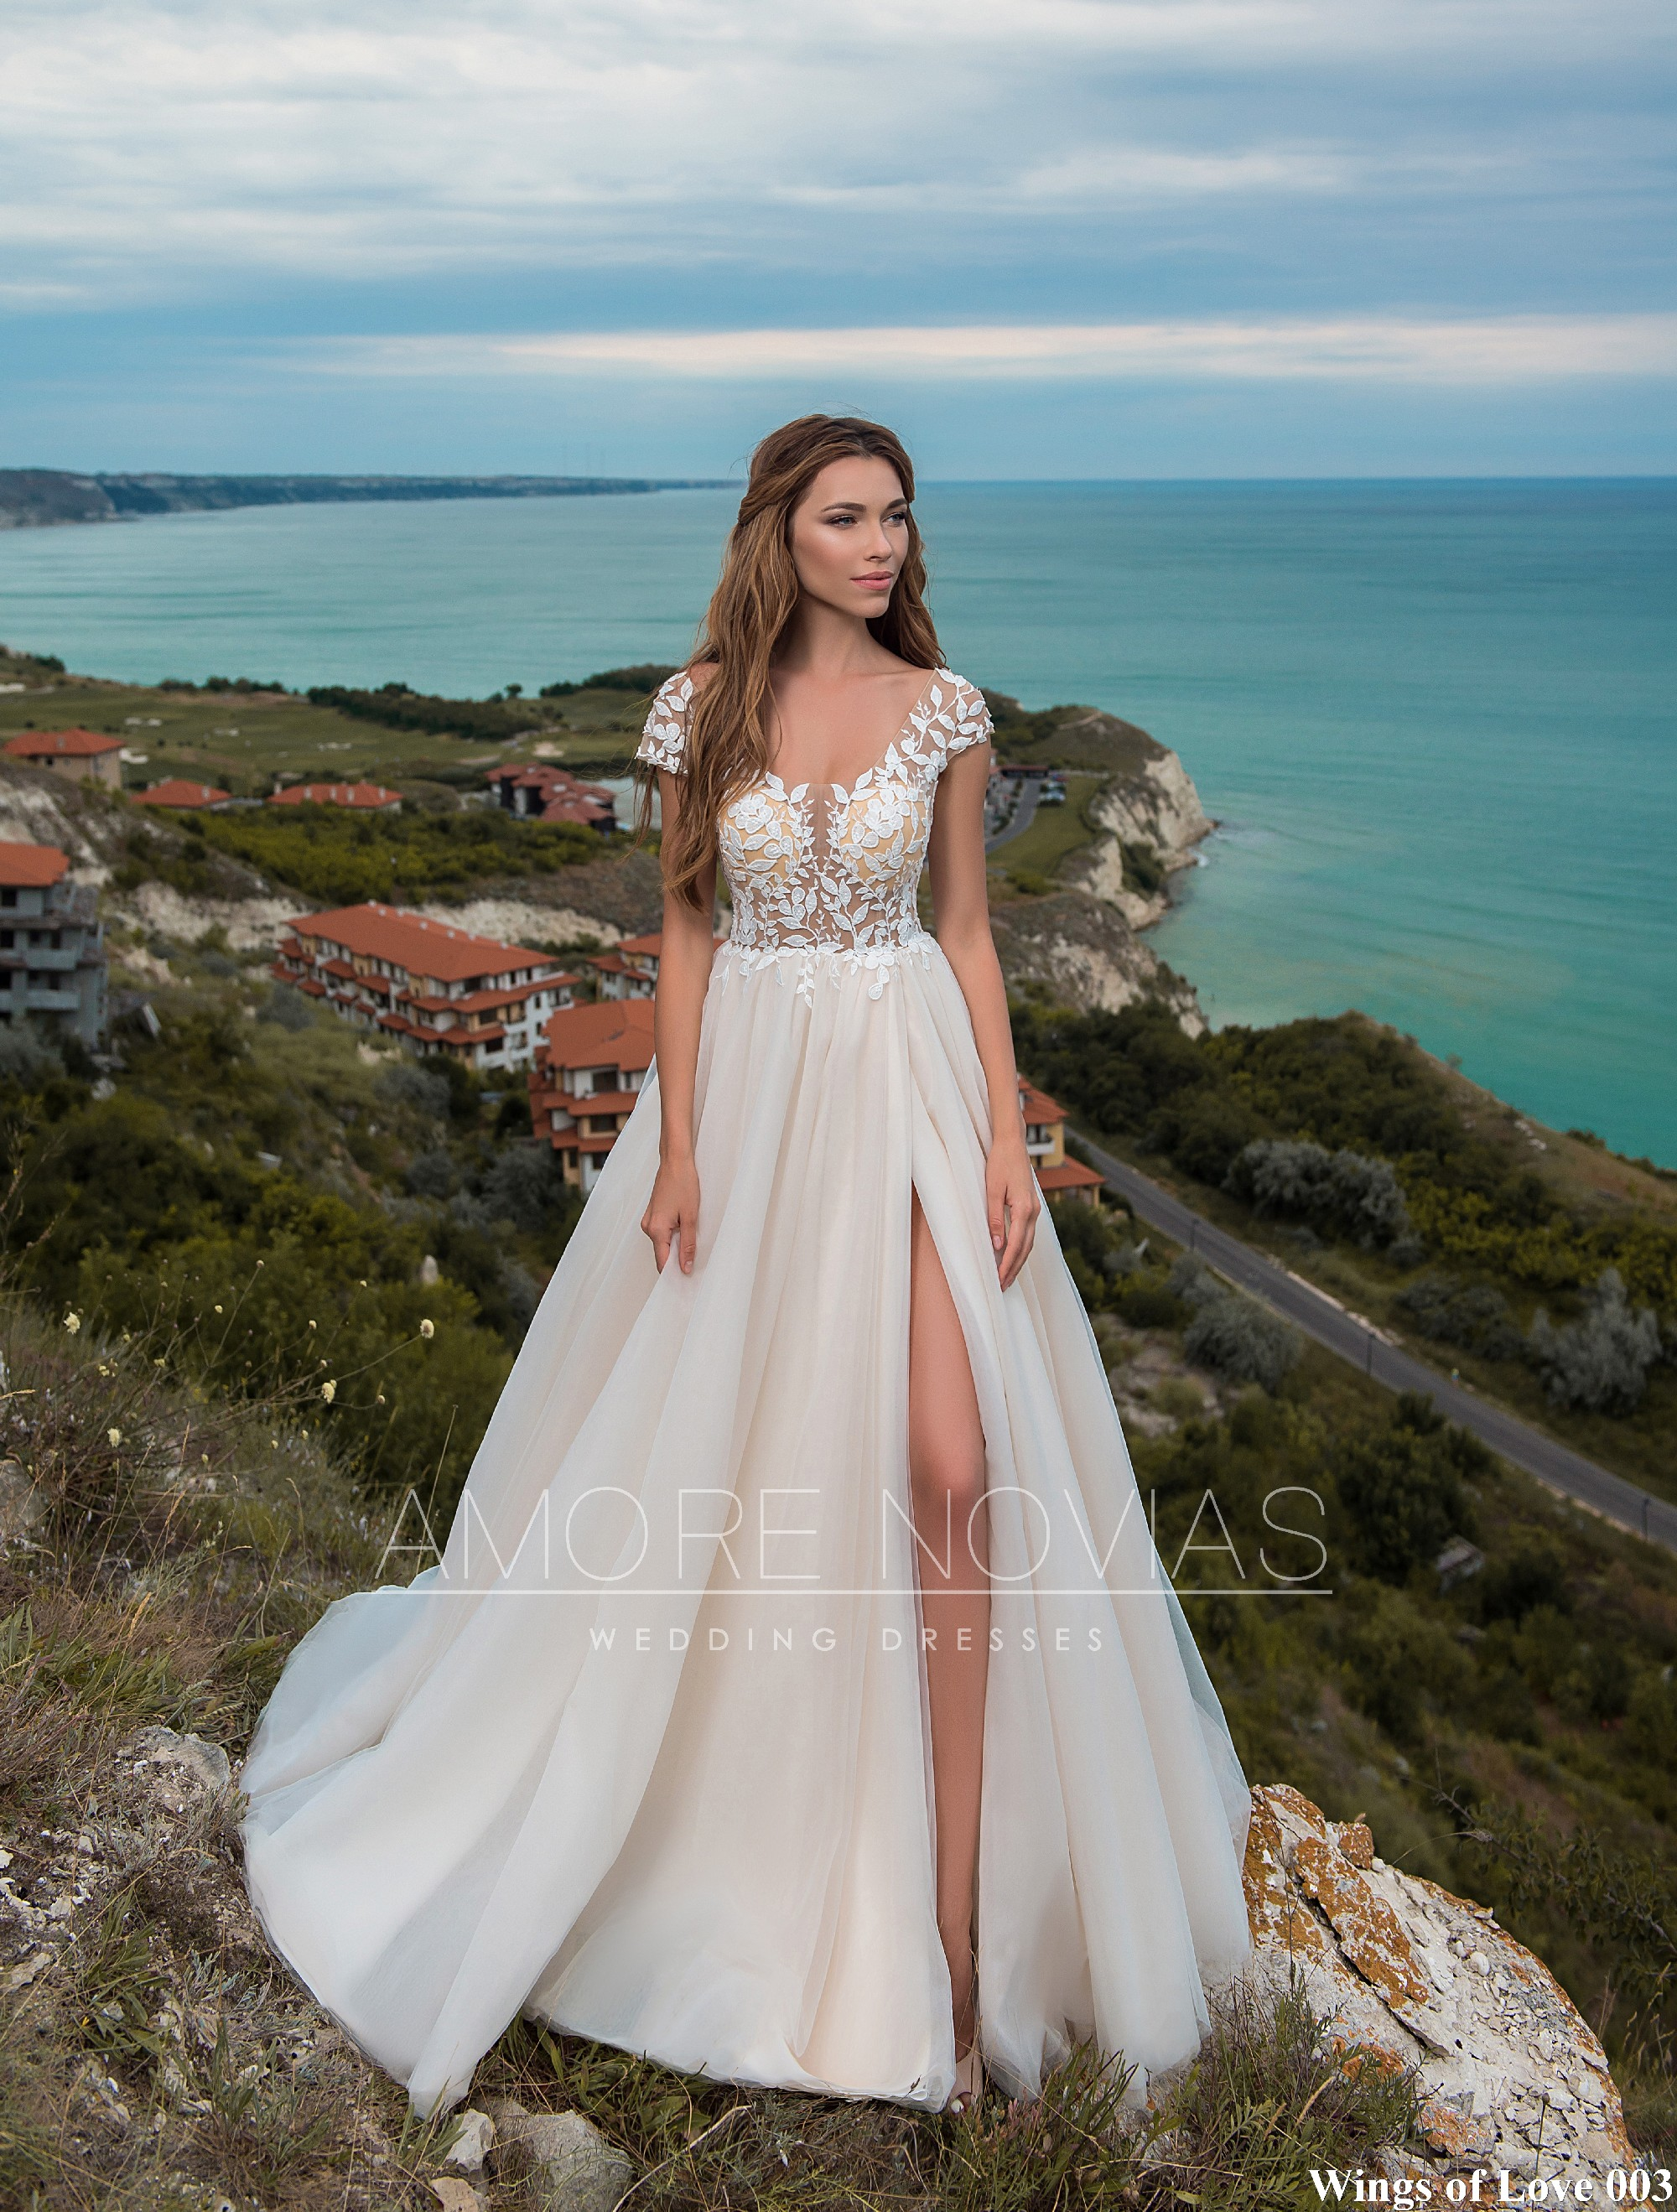 https://amore-novias.com/images/stories/virtuemart/product/lk-003-------(1).jpg